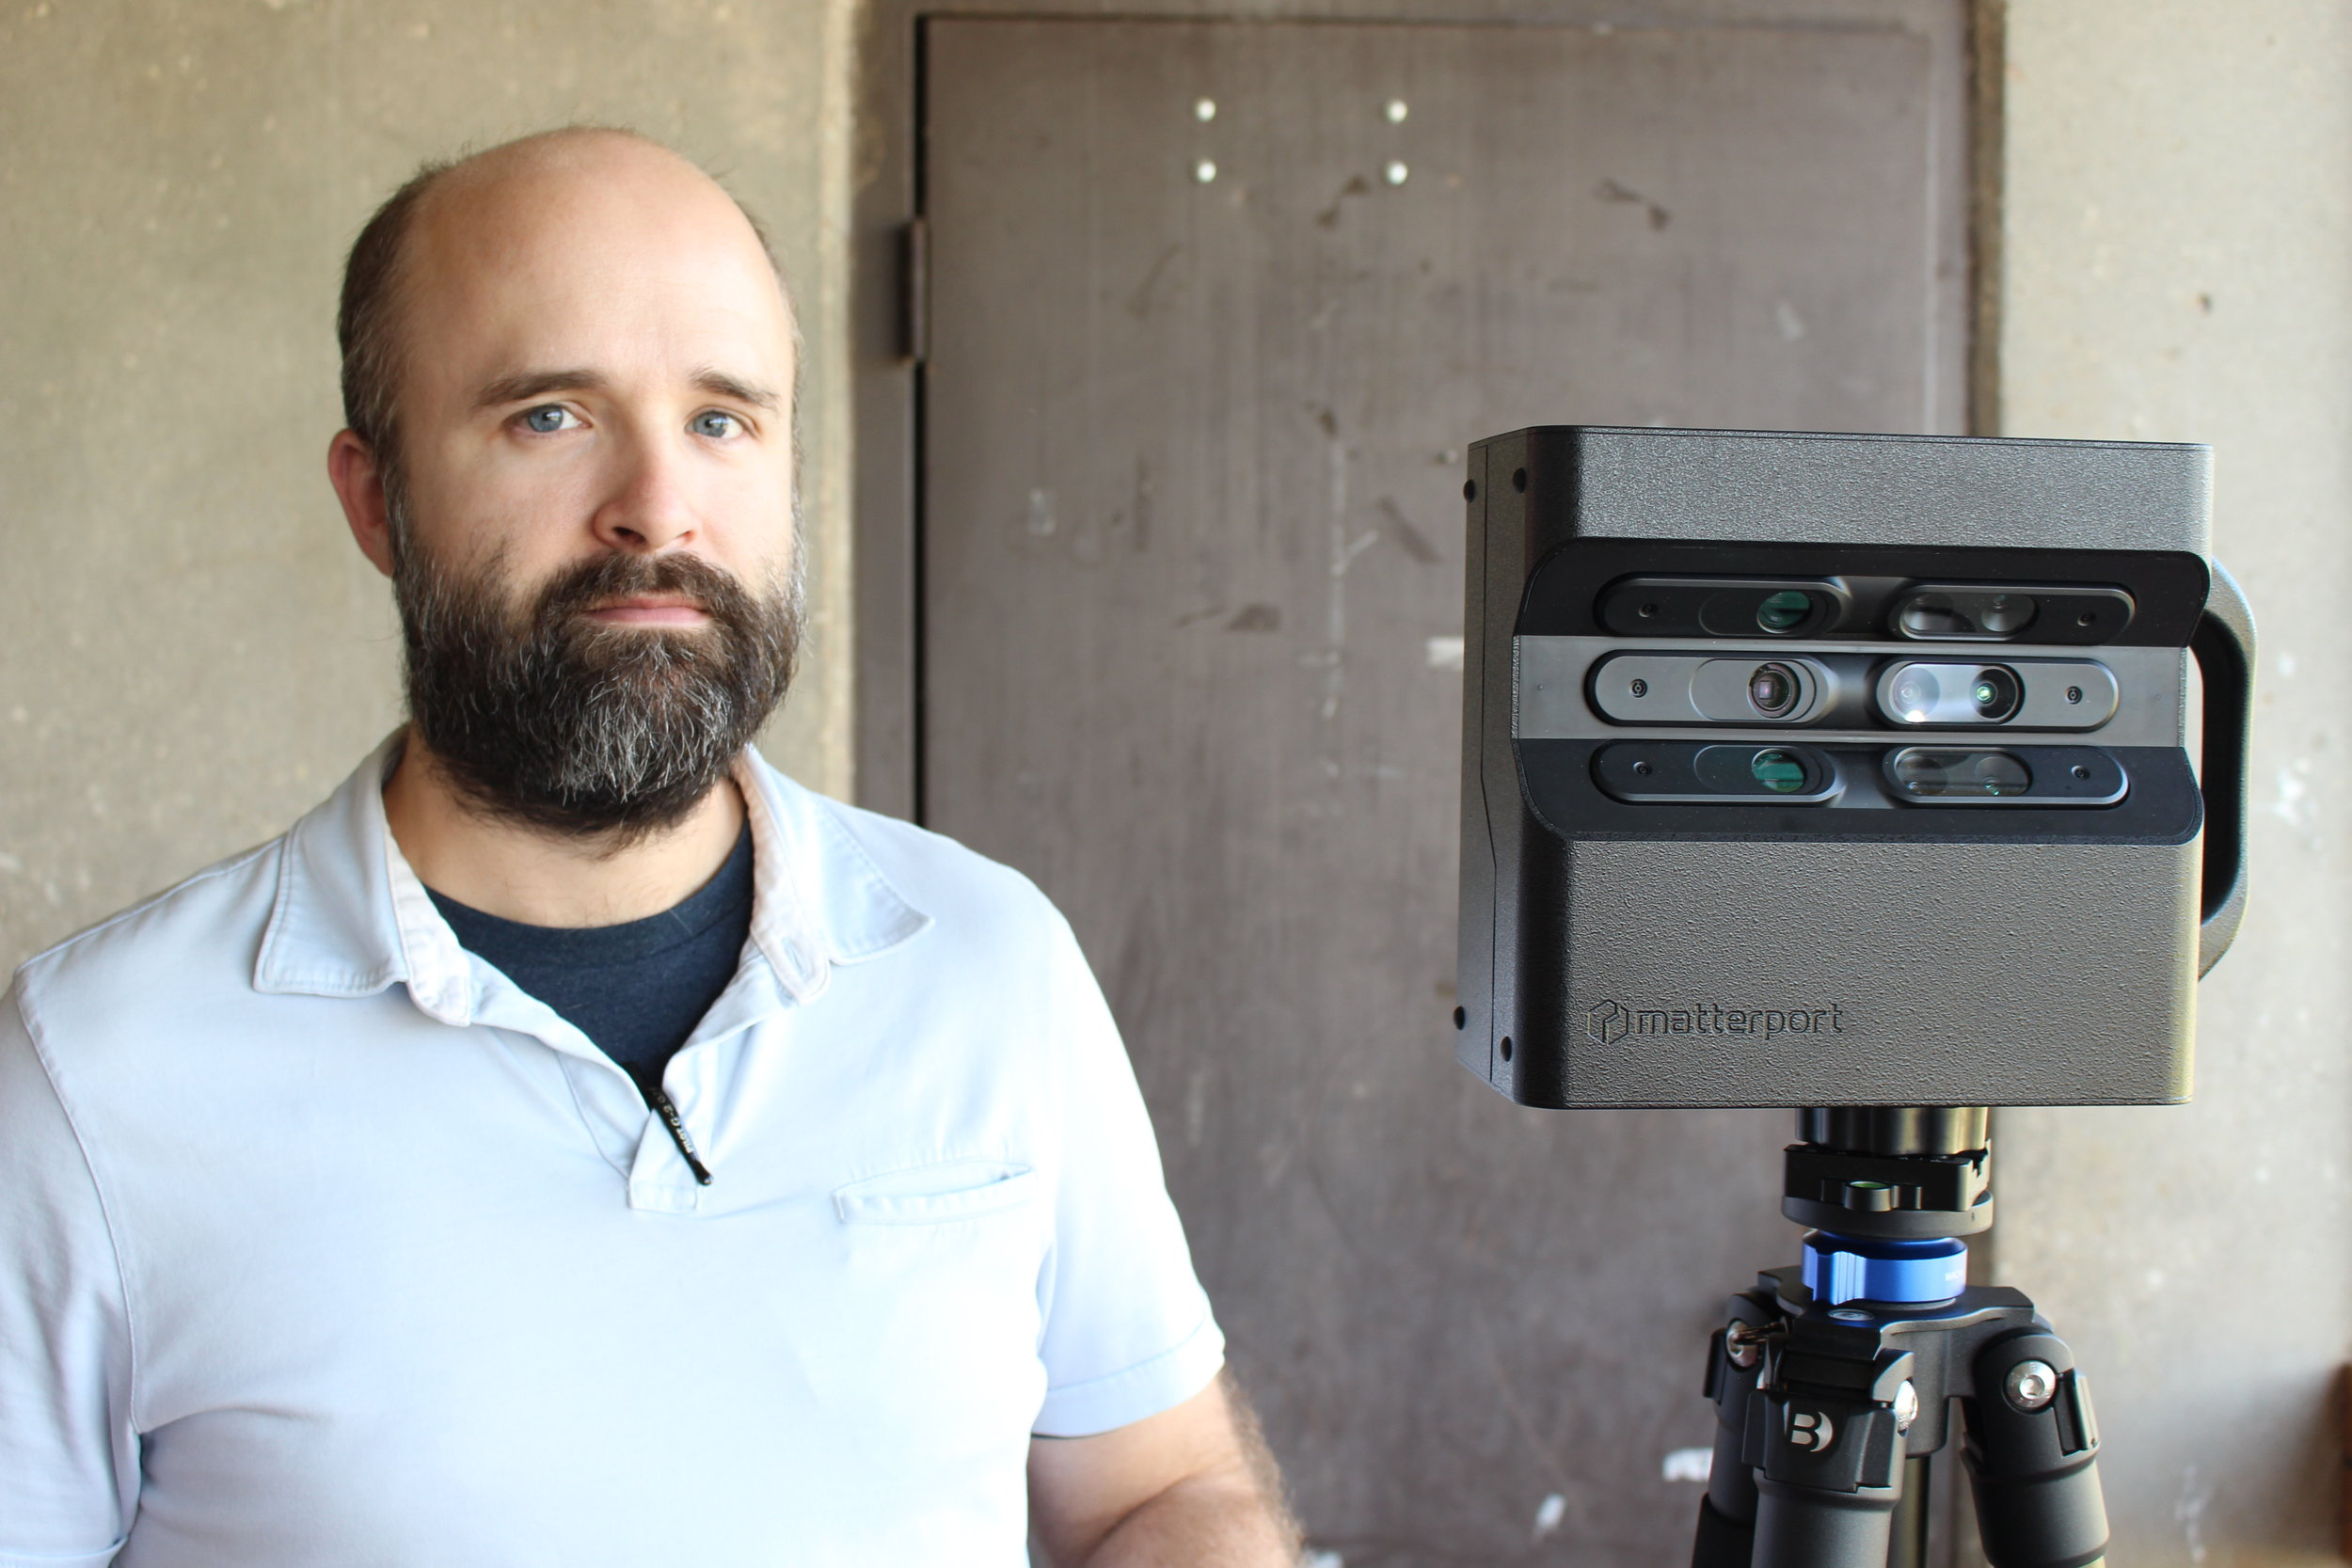 Andrew Brister with his Matterport camera. The images captured on this device create the model seen below.